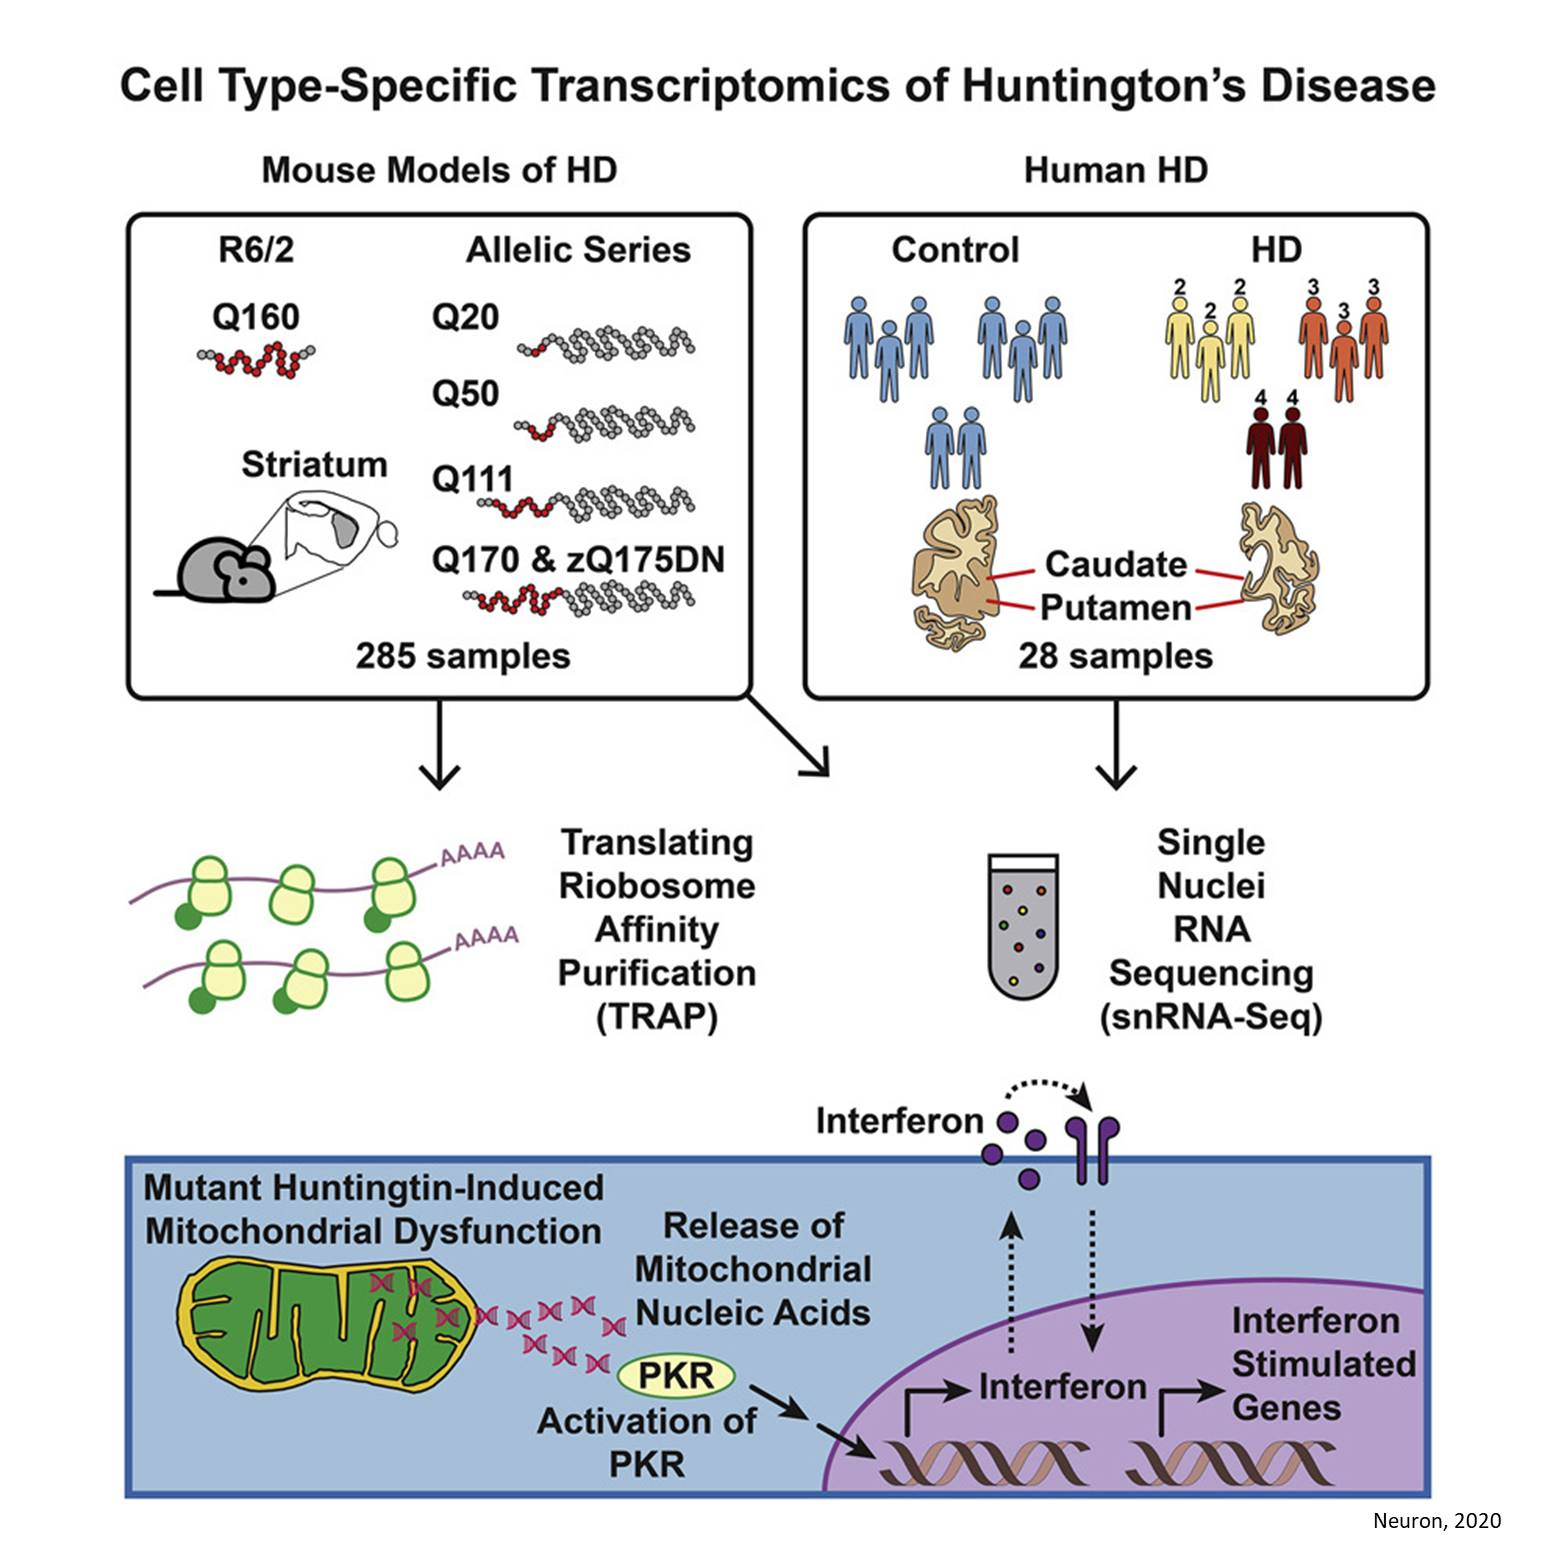 Mitochondrial RNA release activates inflammation in Huntington's disease